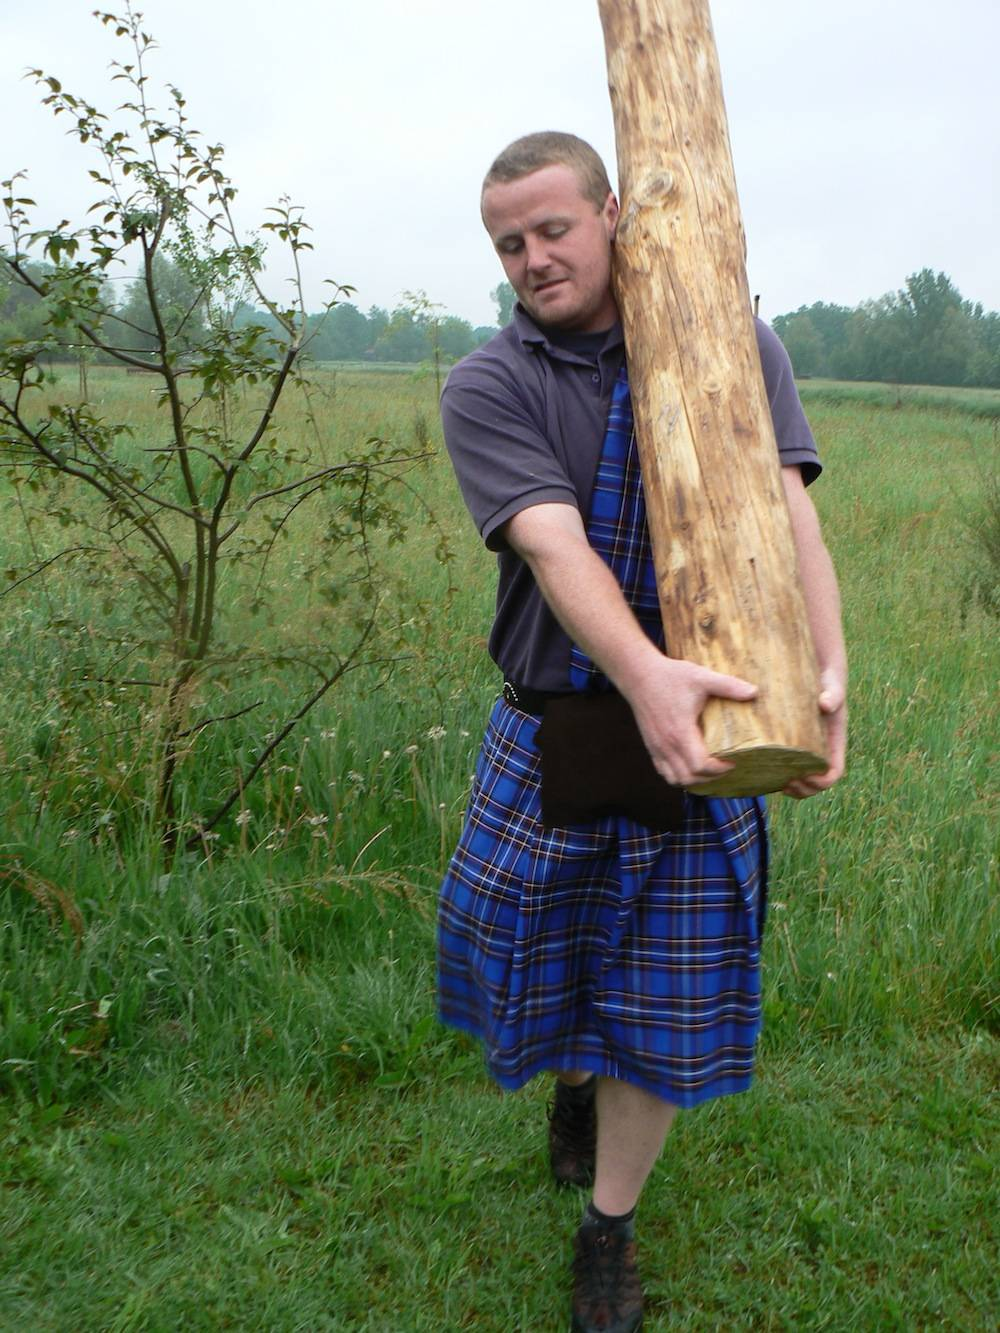 Highland Games Baumstammwerfen